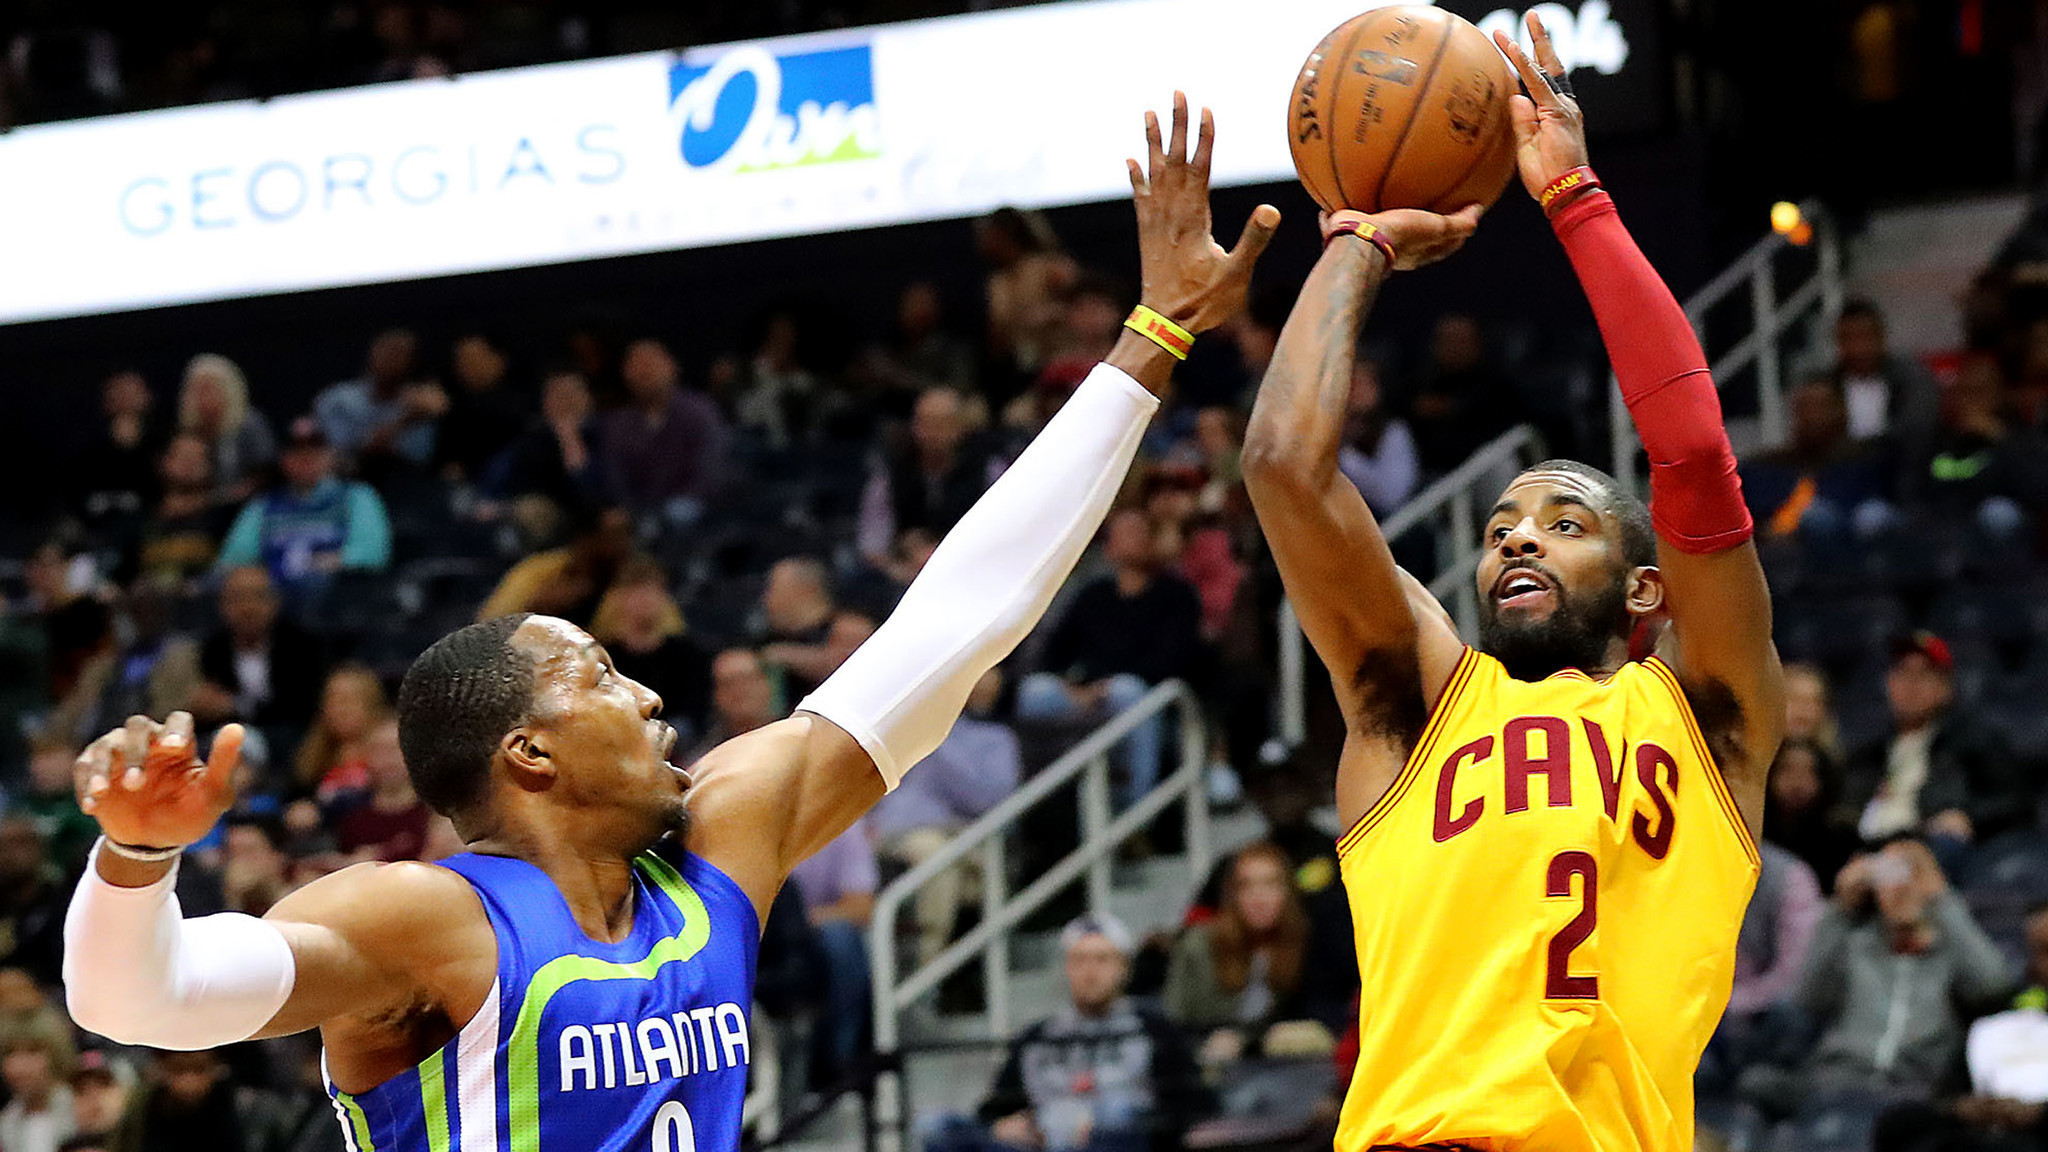 927885aa5e3 upi.com NBA roundup  Cavaliers set record with 25 three-pointers in win  over Hawks